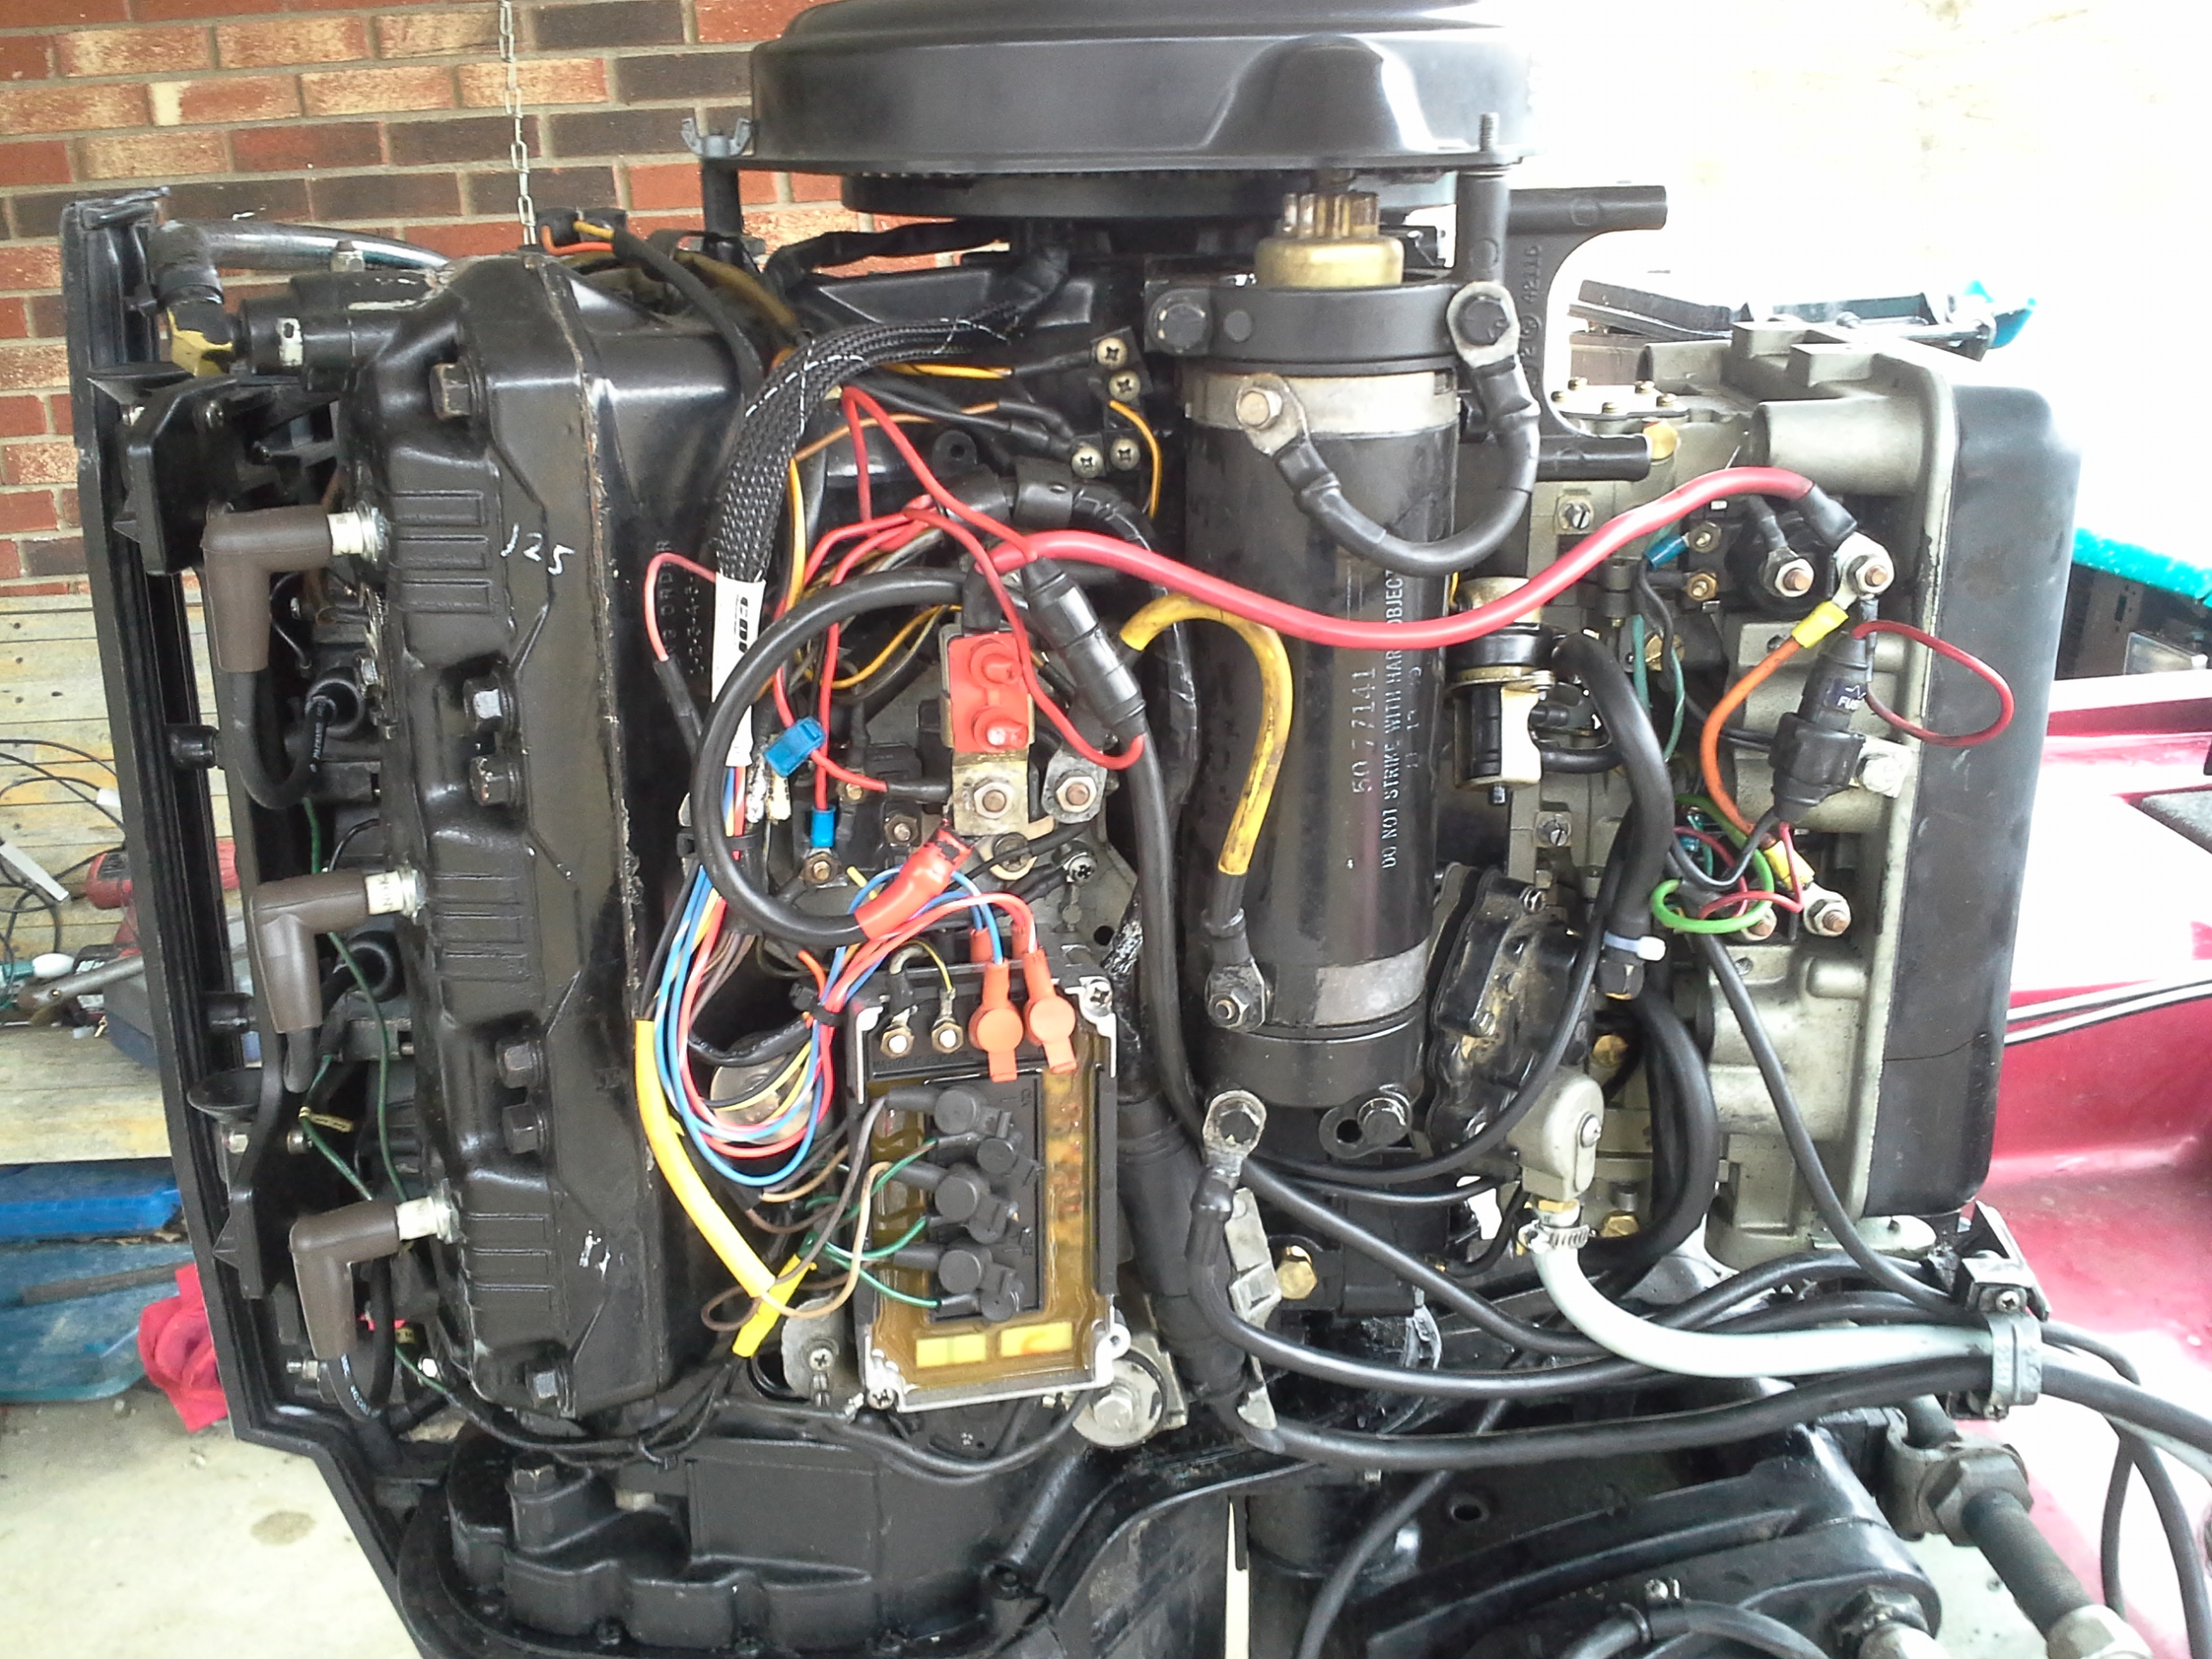 2014 03 16_173415_20140316_132234 60 hp mercury outboard wiring diagram 60 hp evinrude outboard  at edmiracle.co